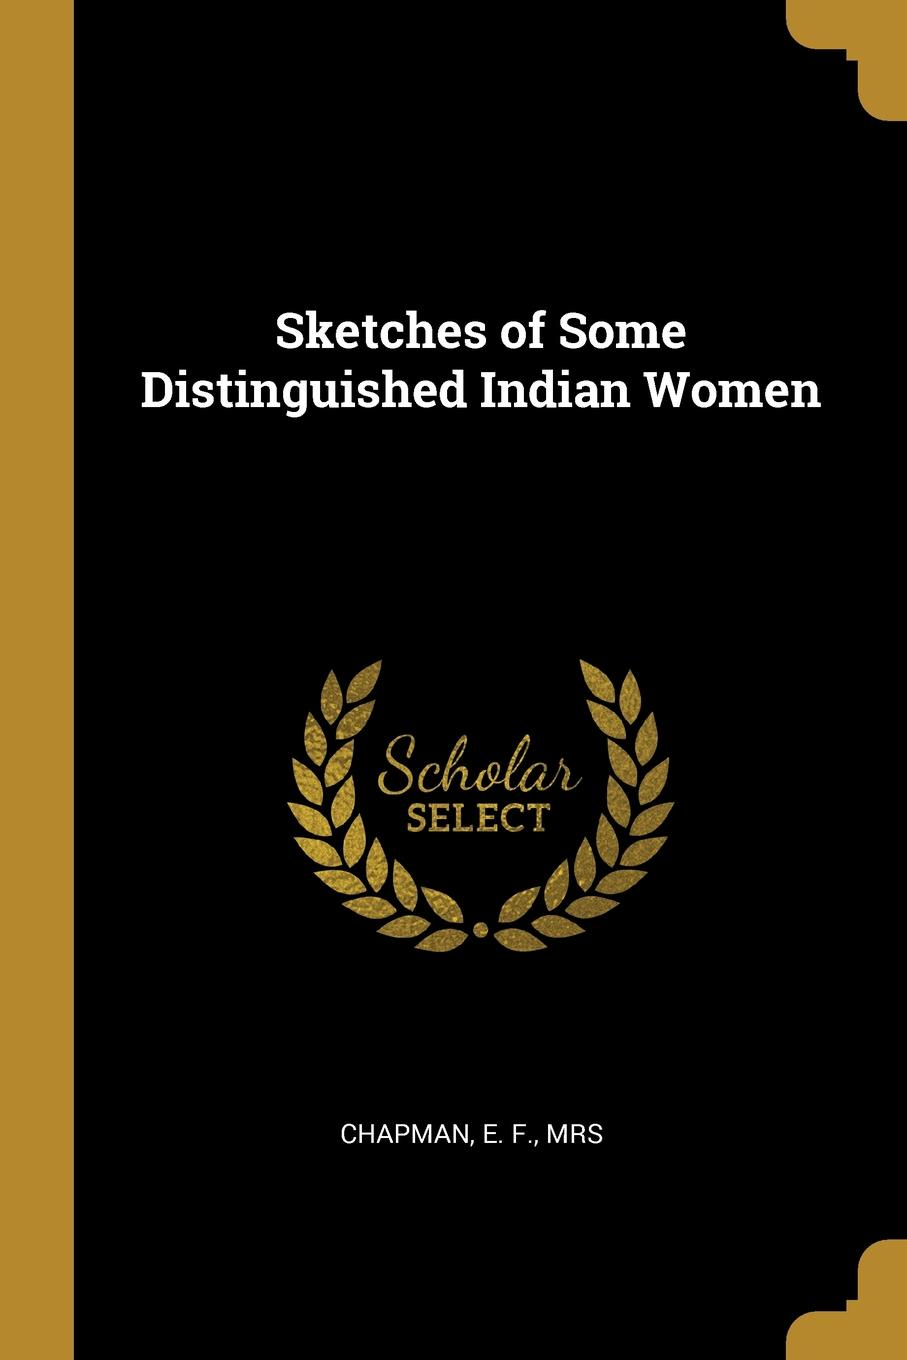 Mrs Chapman E. F.. Sketches of Some Distinguished Indian Women